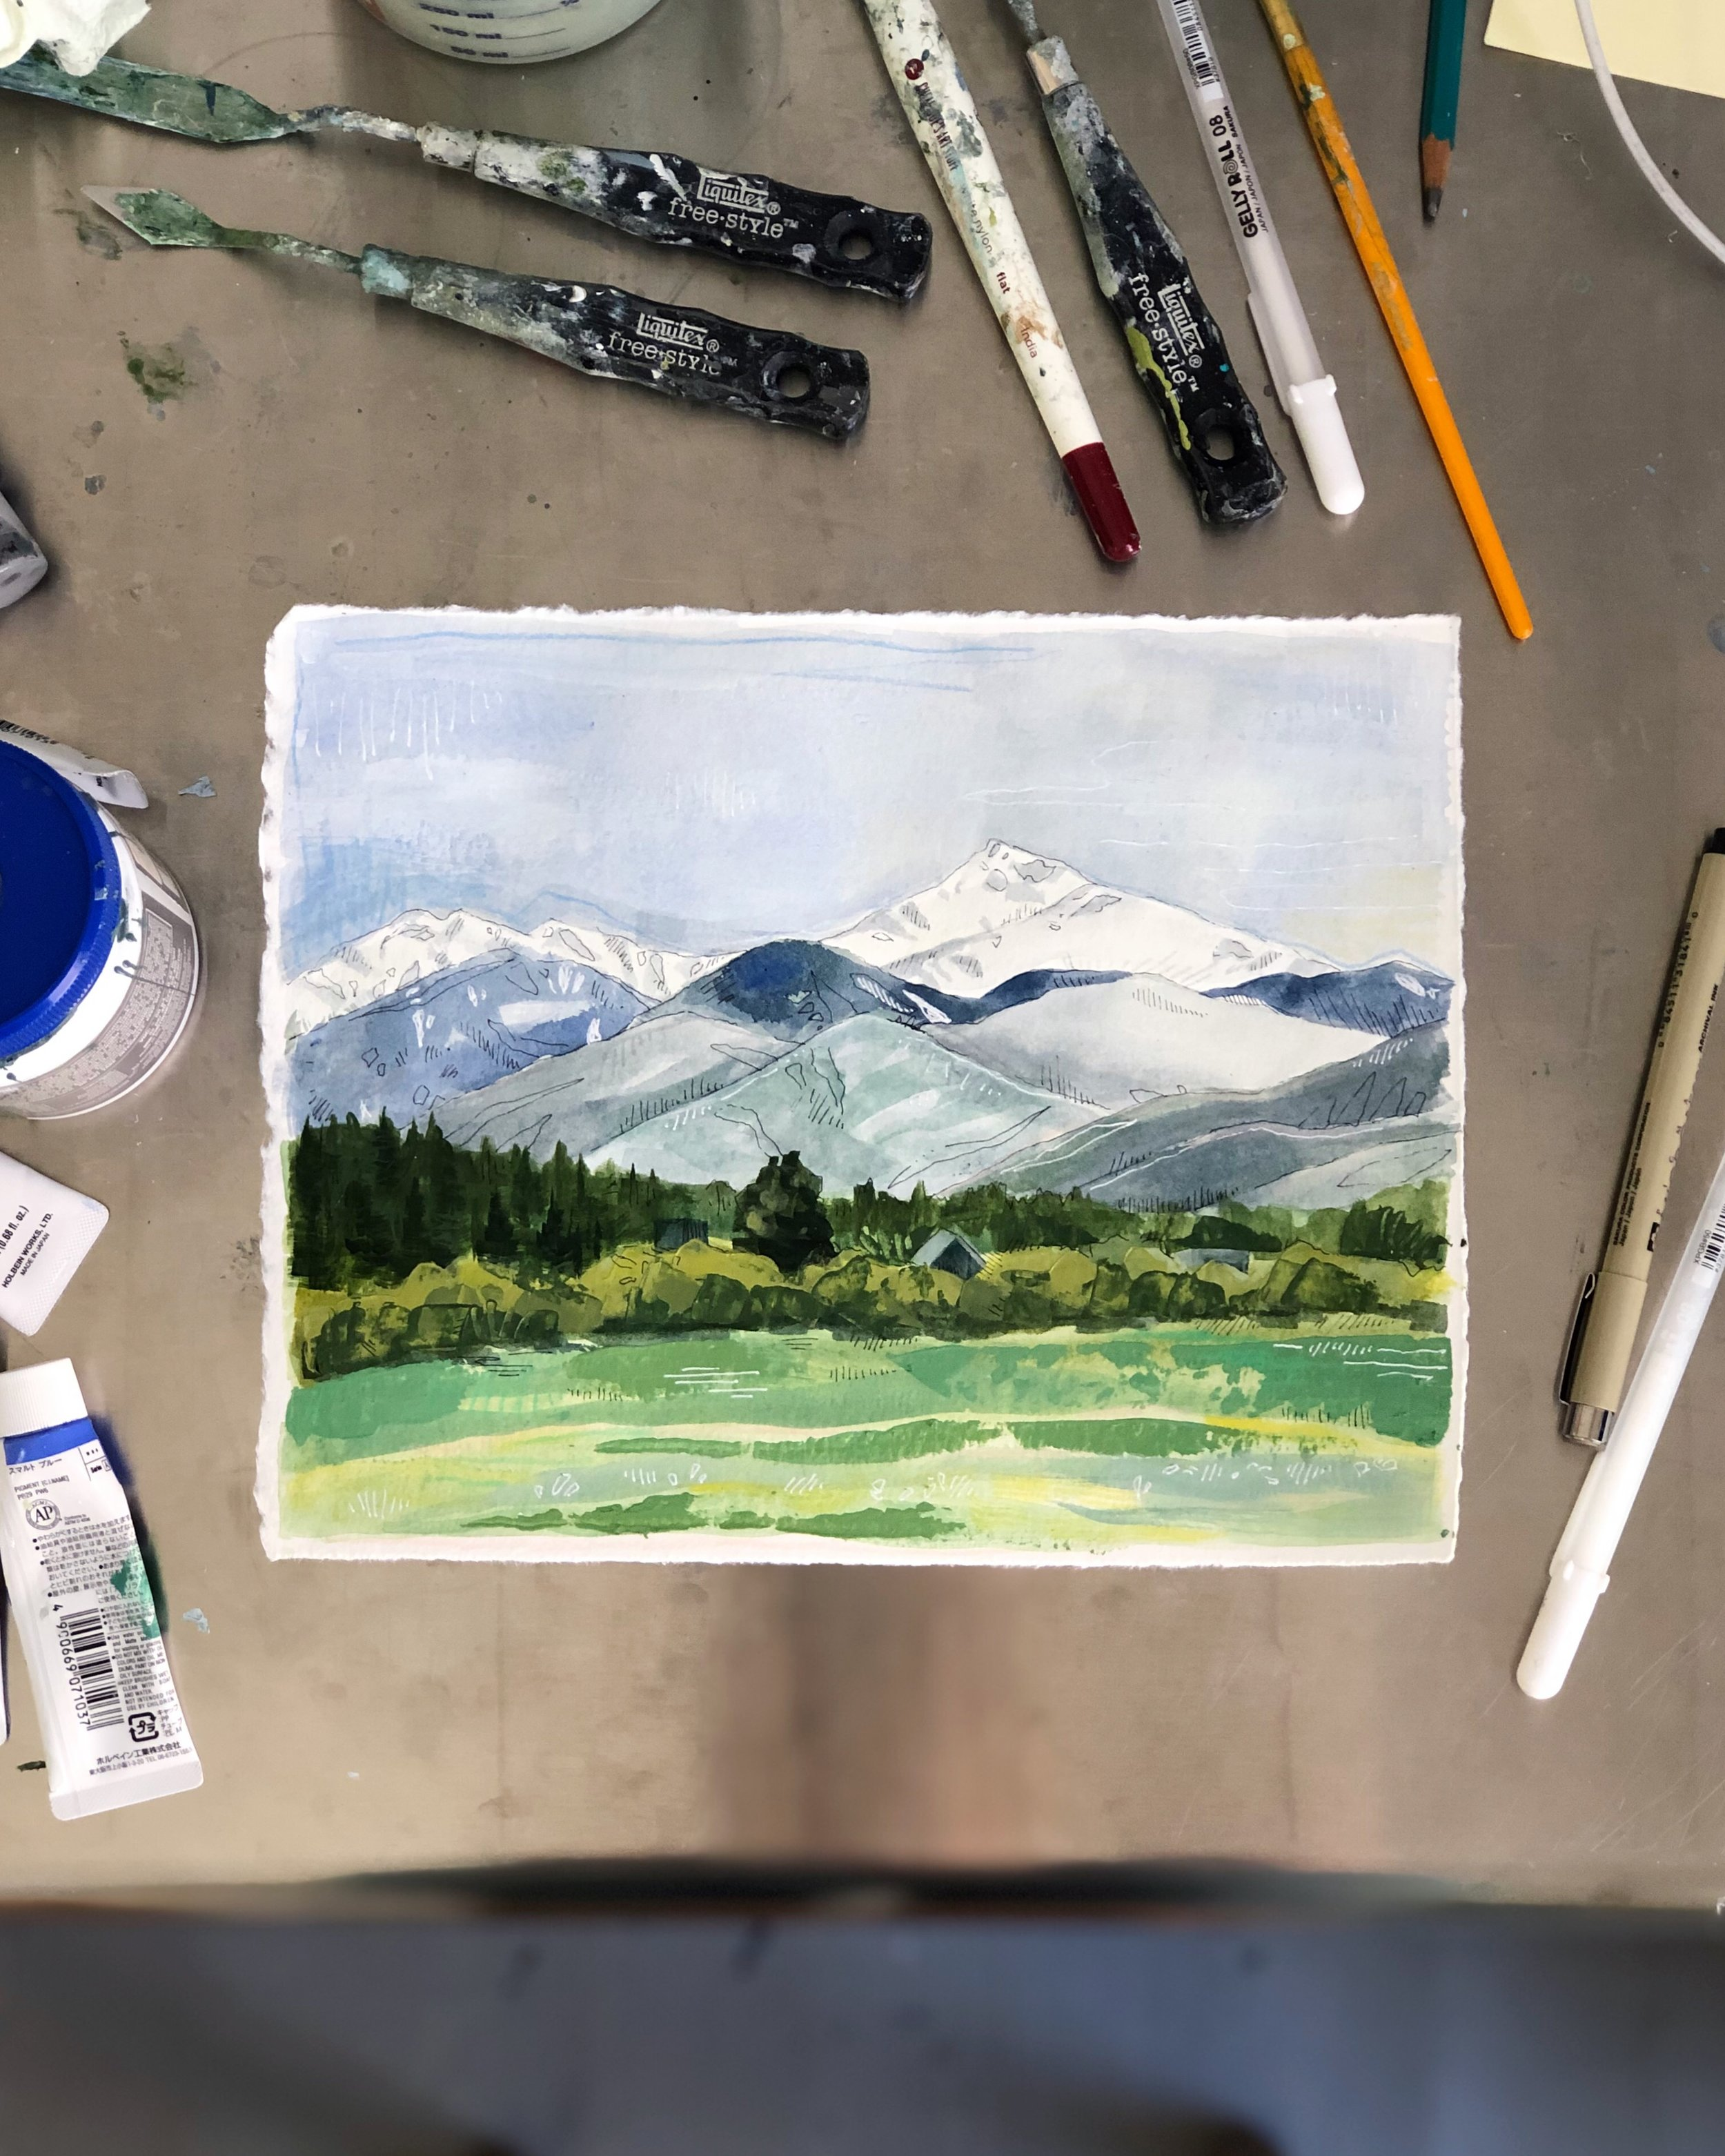 This little mountain painting was commissioned by my dear friend's now-husband as a wedding gift earlier this month.